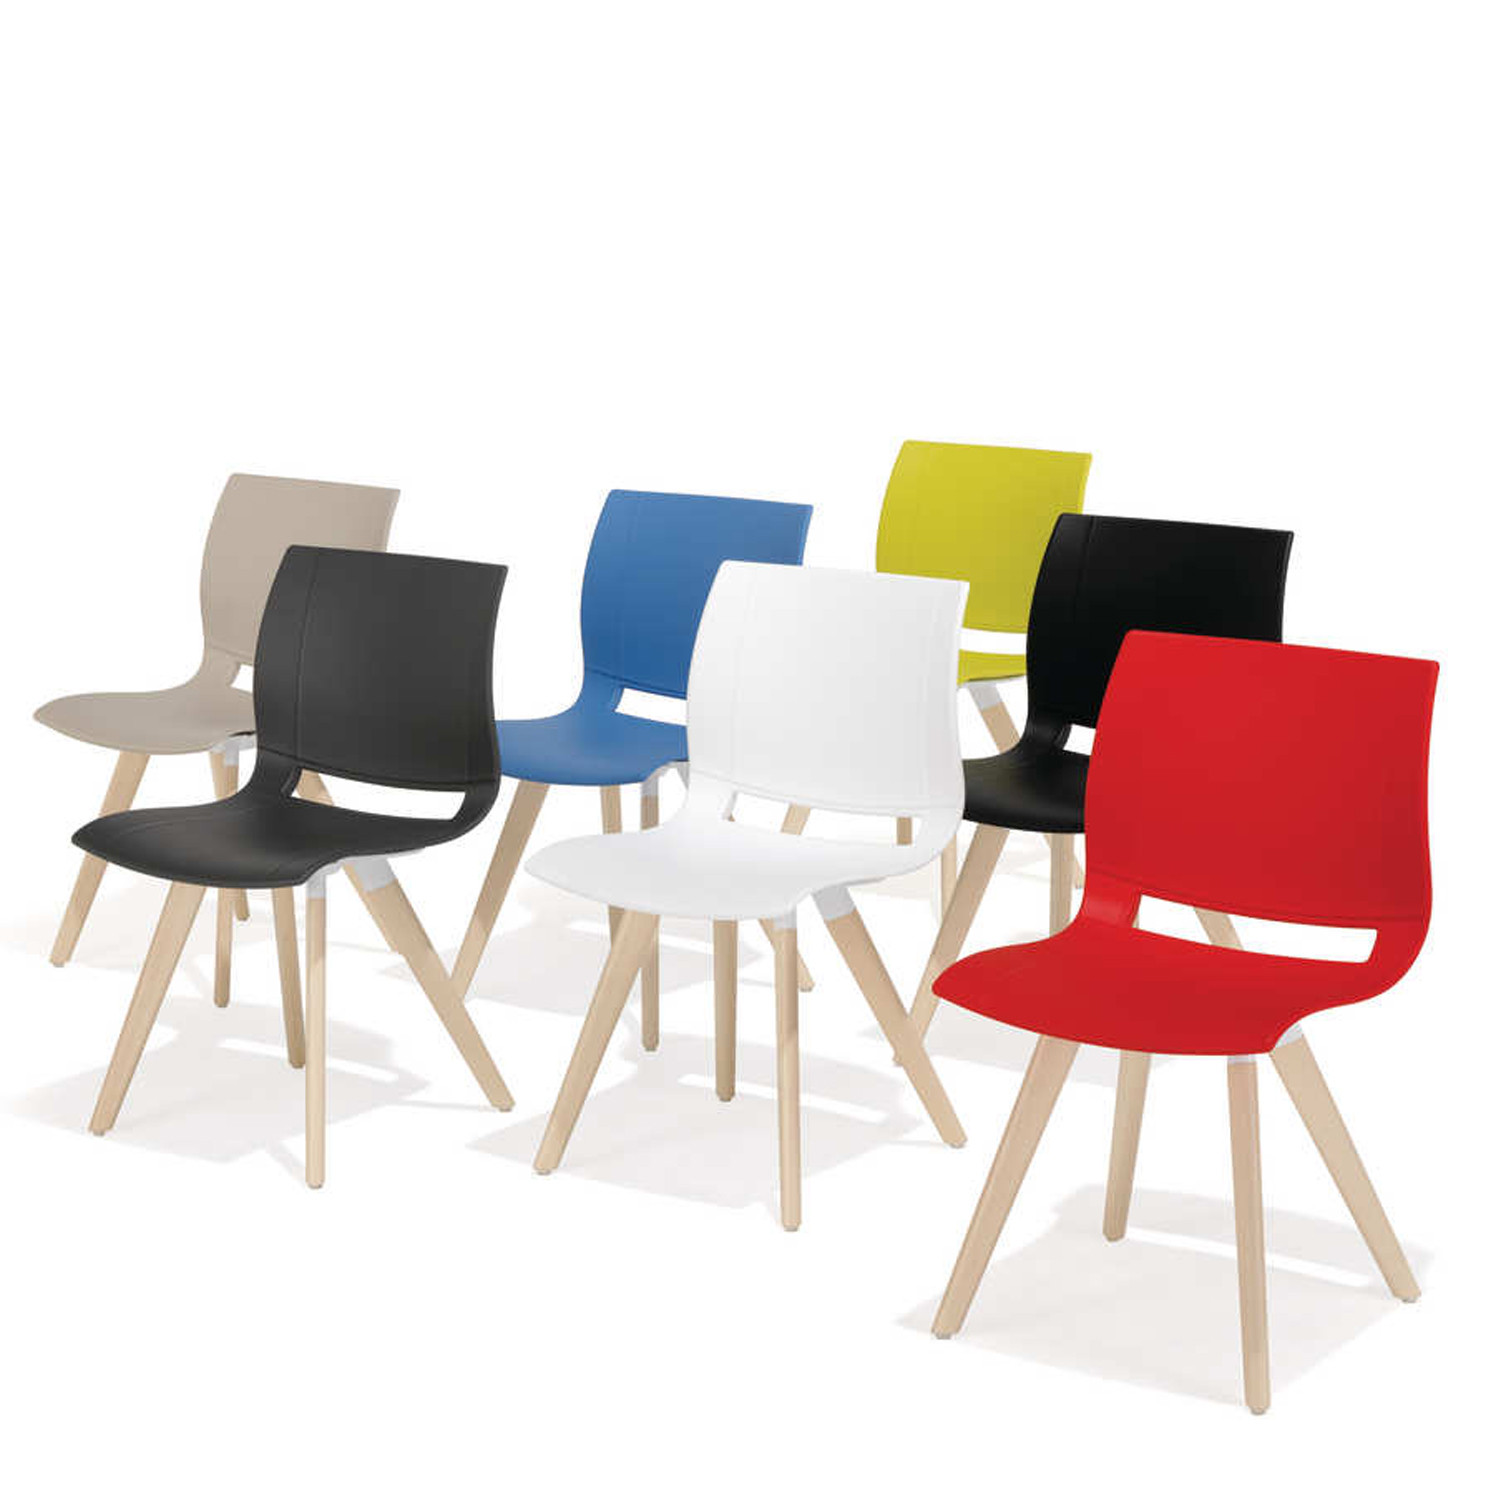 2080 Uni_Verso Chairs are available in a wide range of colours